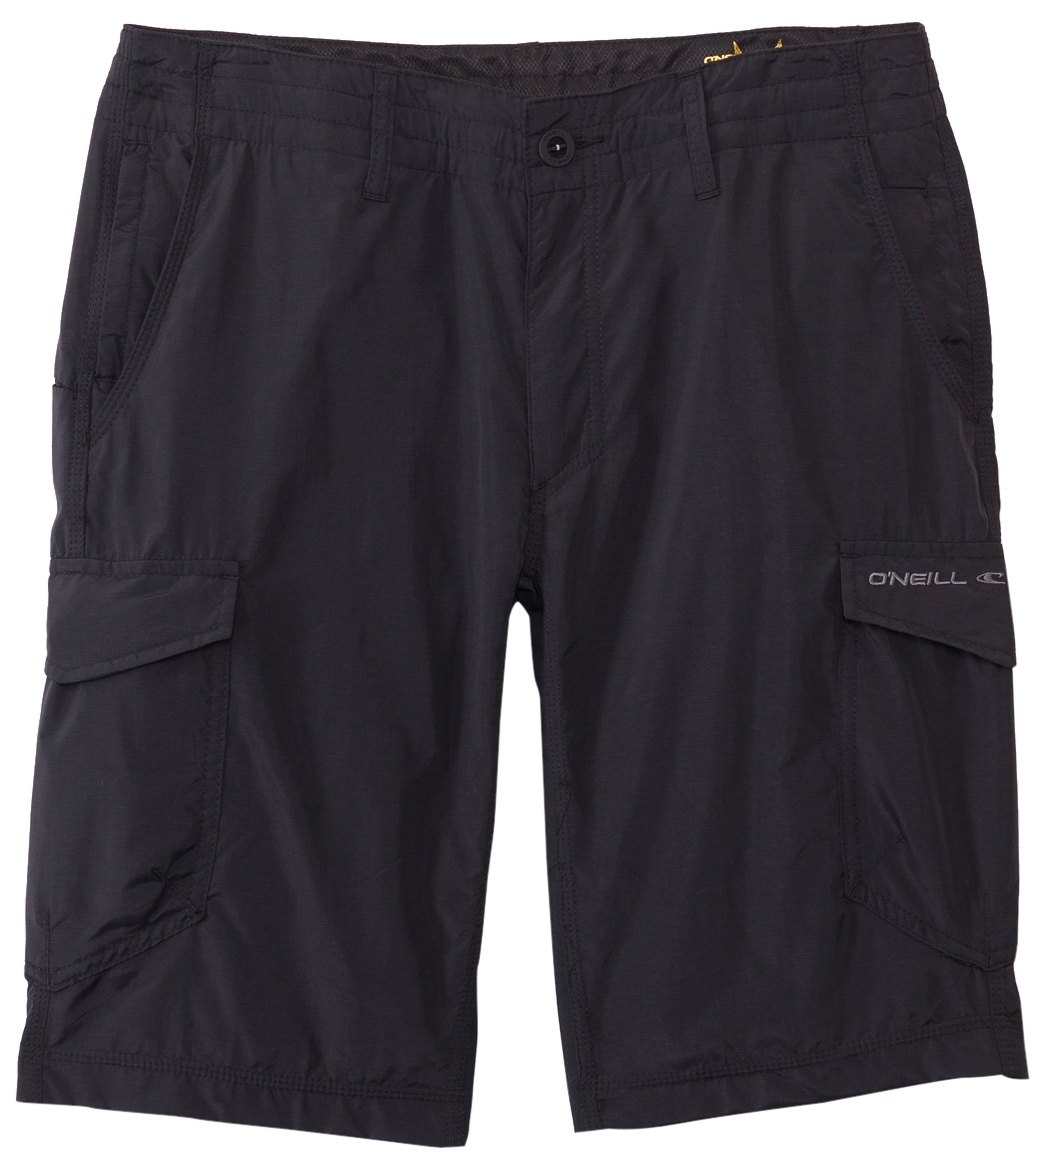 41f942ac07 ... O'Neill Men's Traveler Hybrid Cargo Walkshort Boardshort. Share